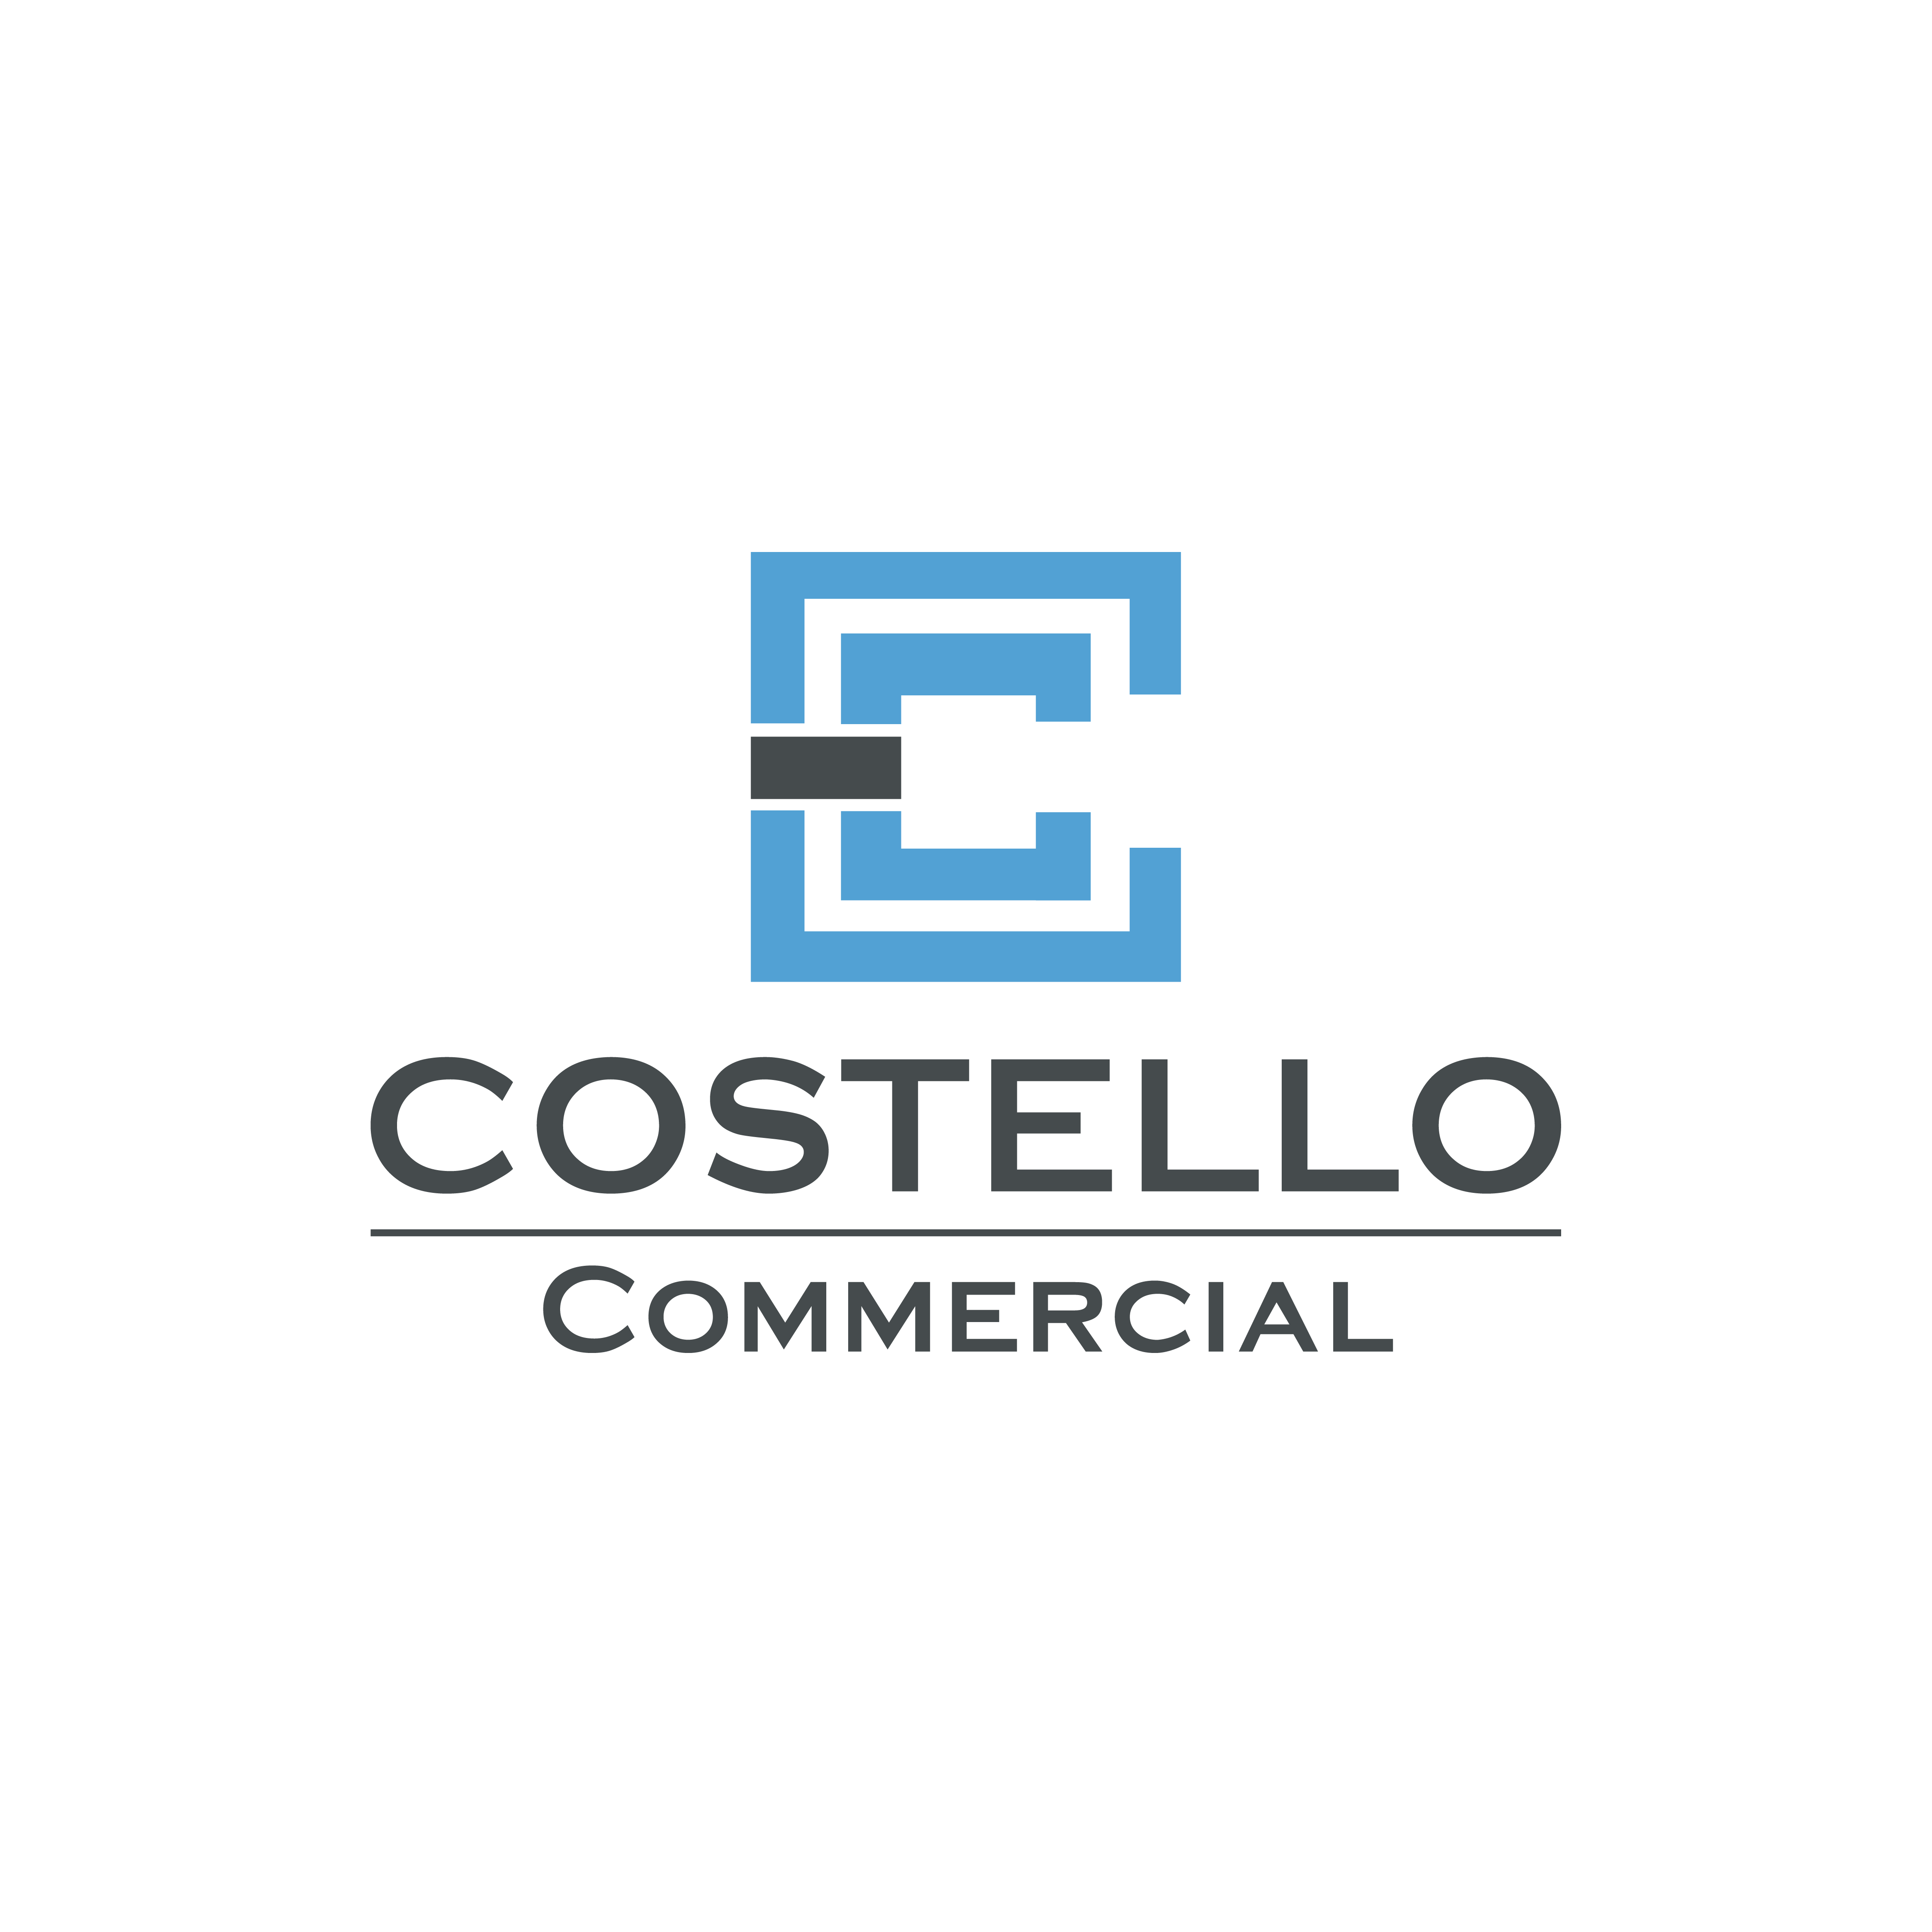 Costello Commercial